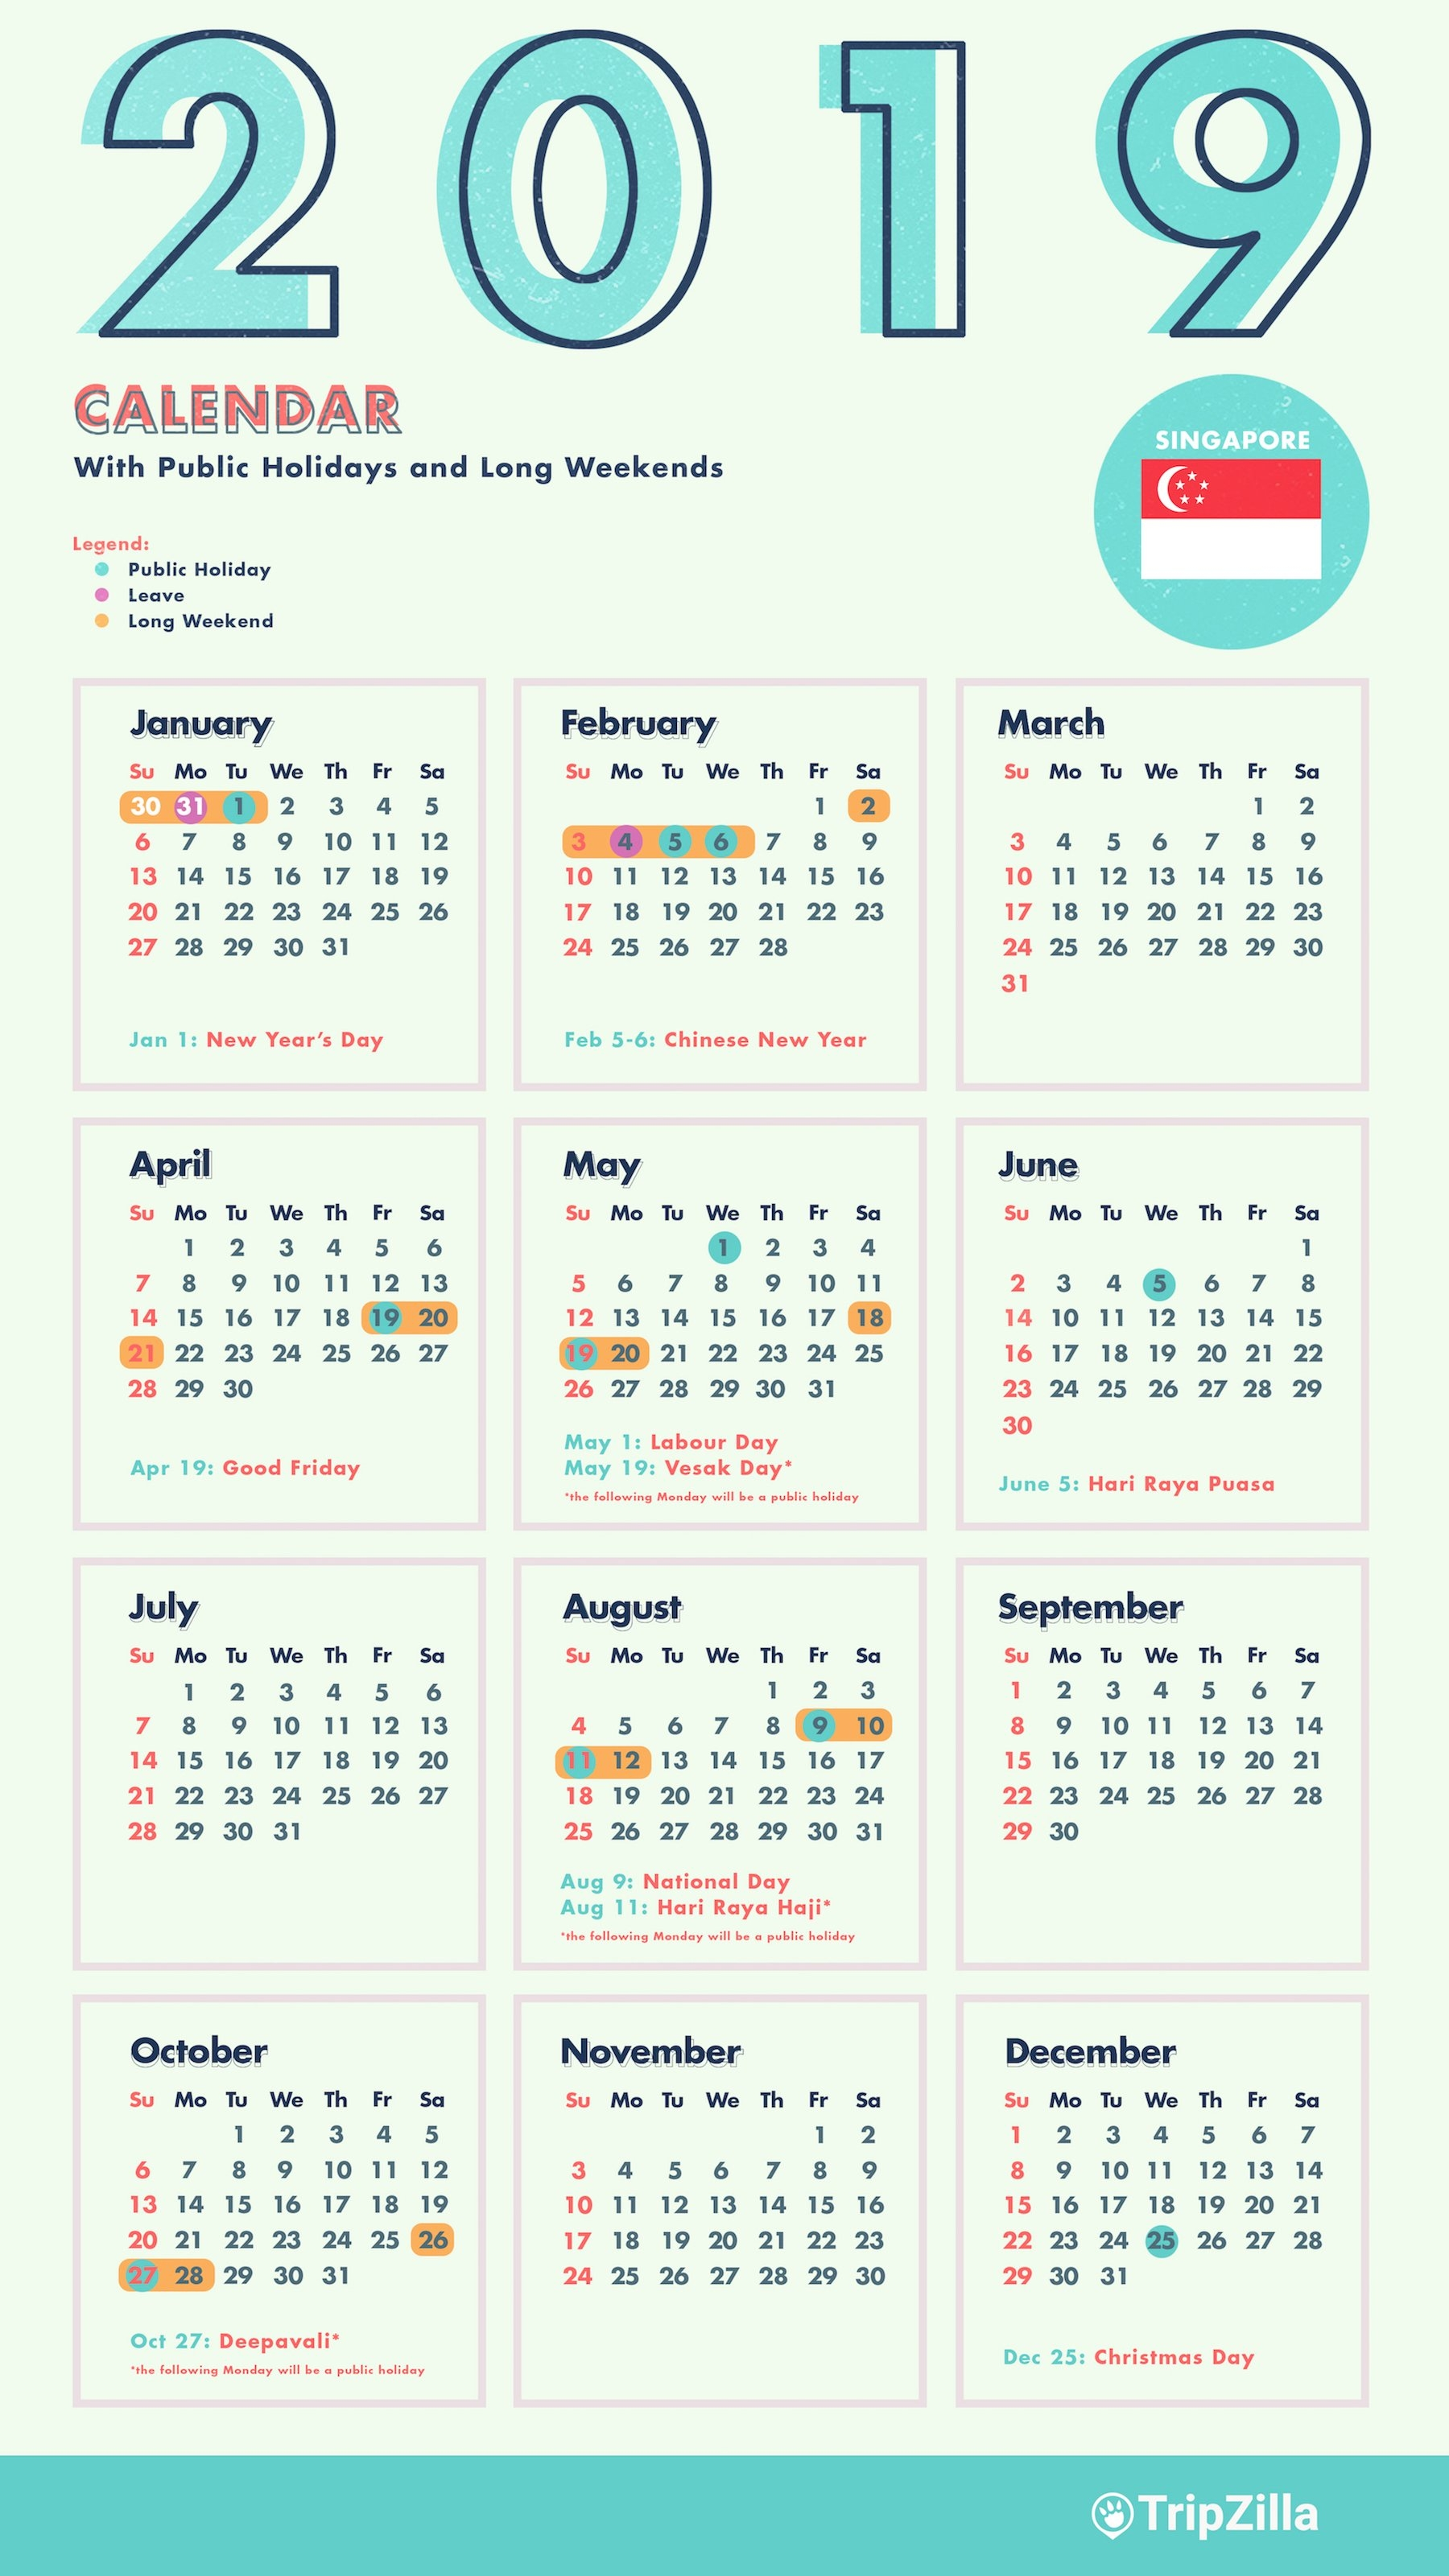 6 Long Weekends In Singapore In 2019 (Bonus Calendar & Cheatsheet) Calendar 2019 Good Friday